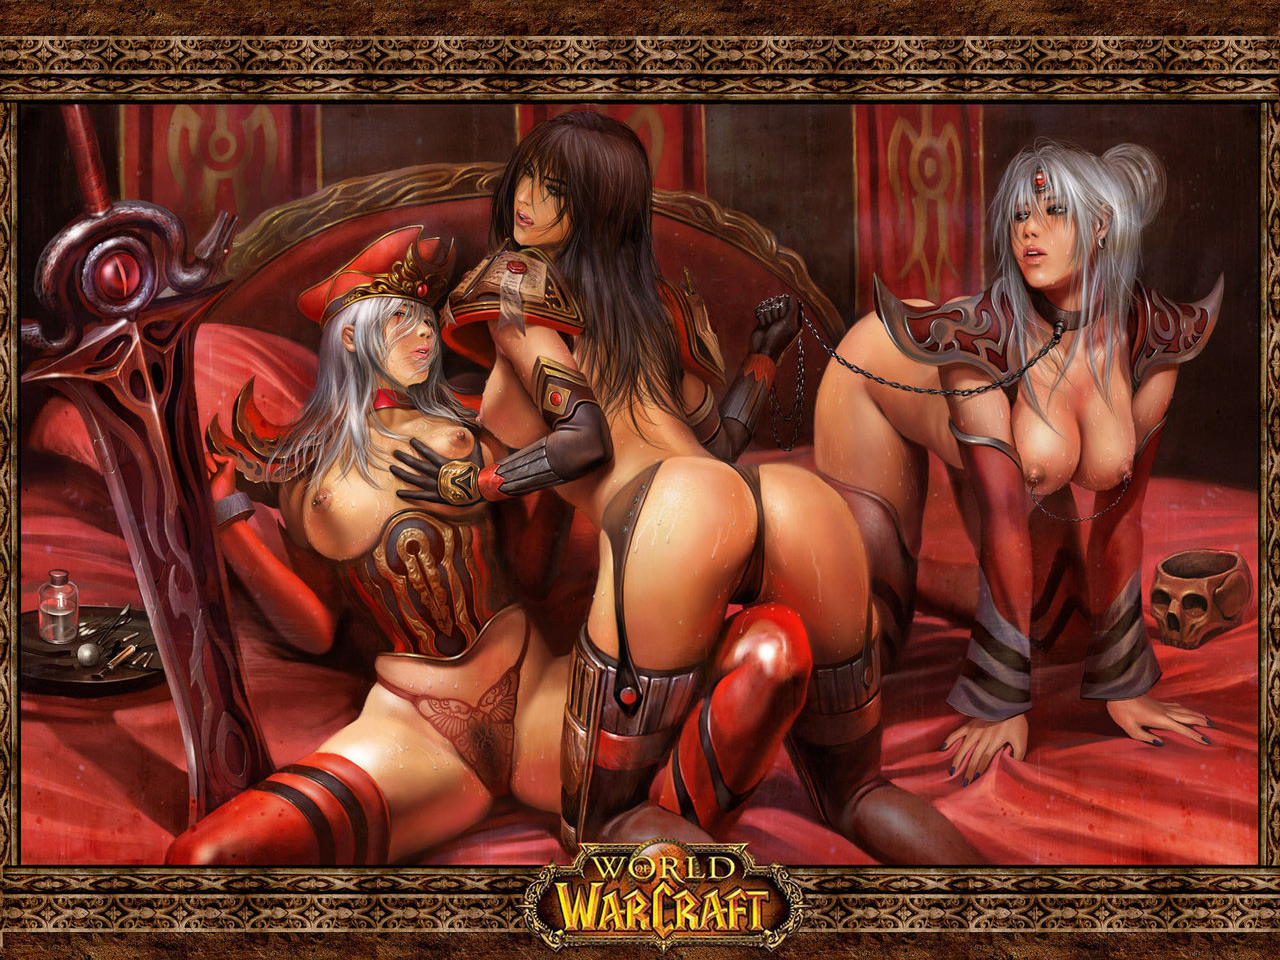 World of warcraft girls nude